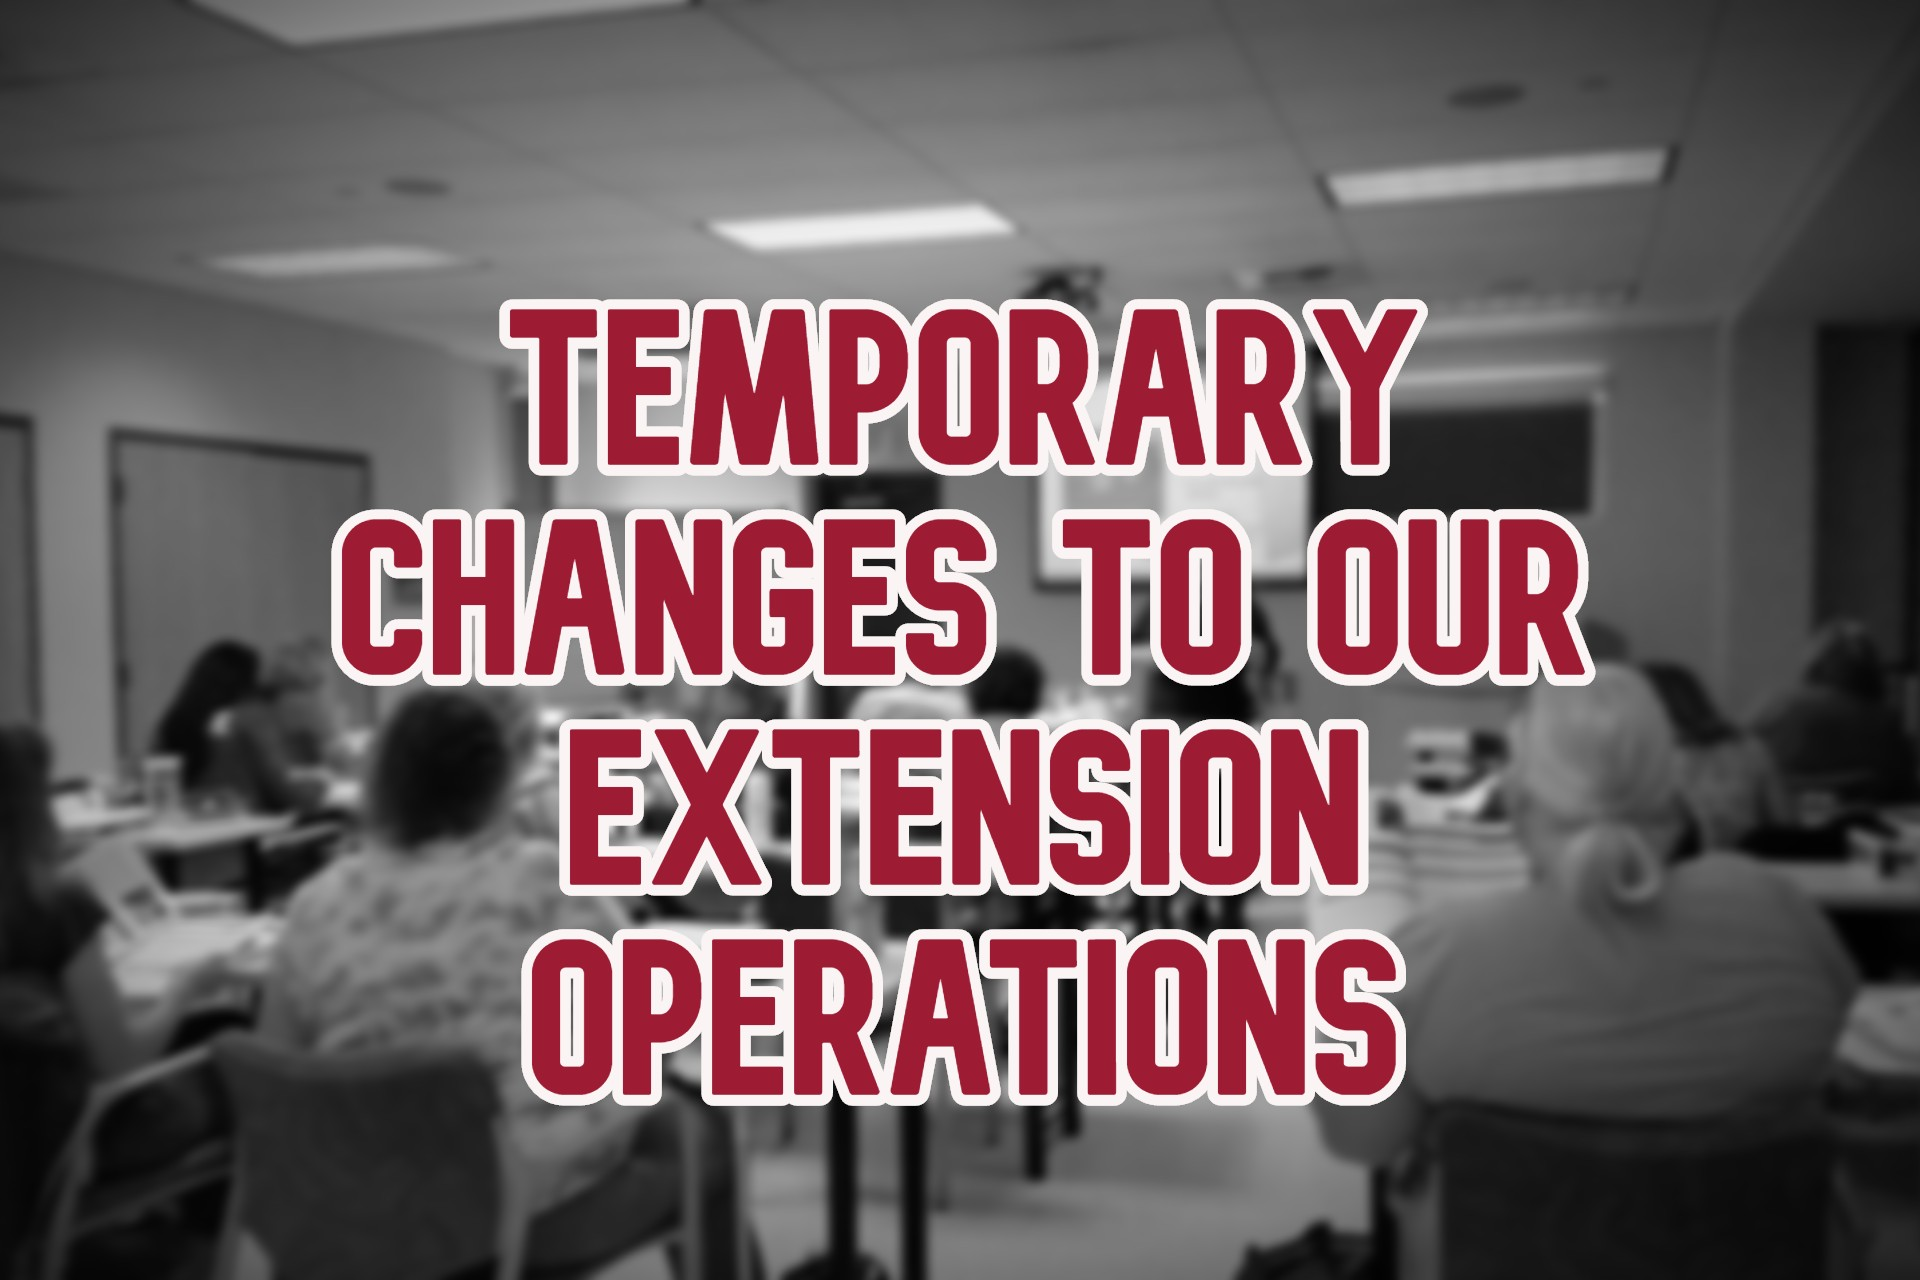 Temporary Changes to our Extension Operations